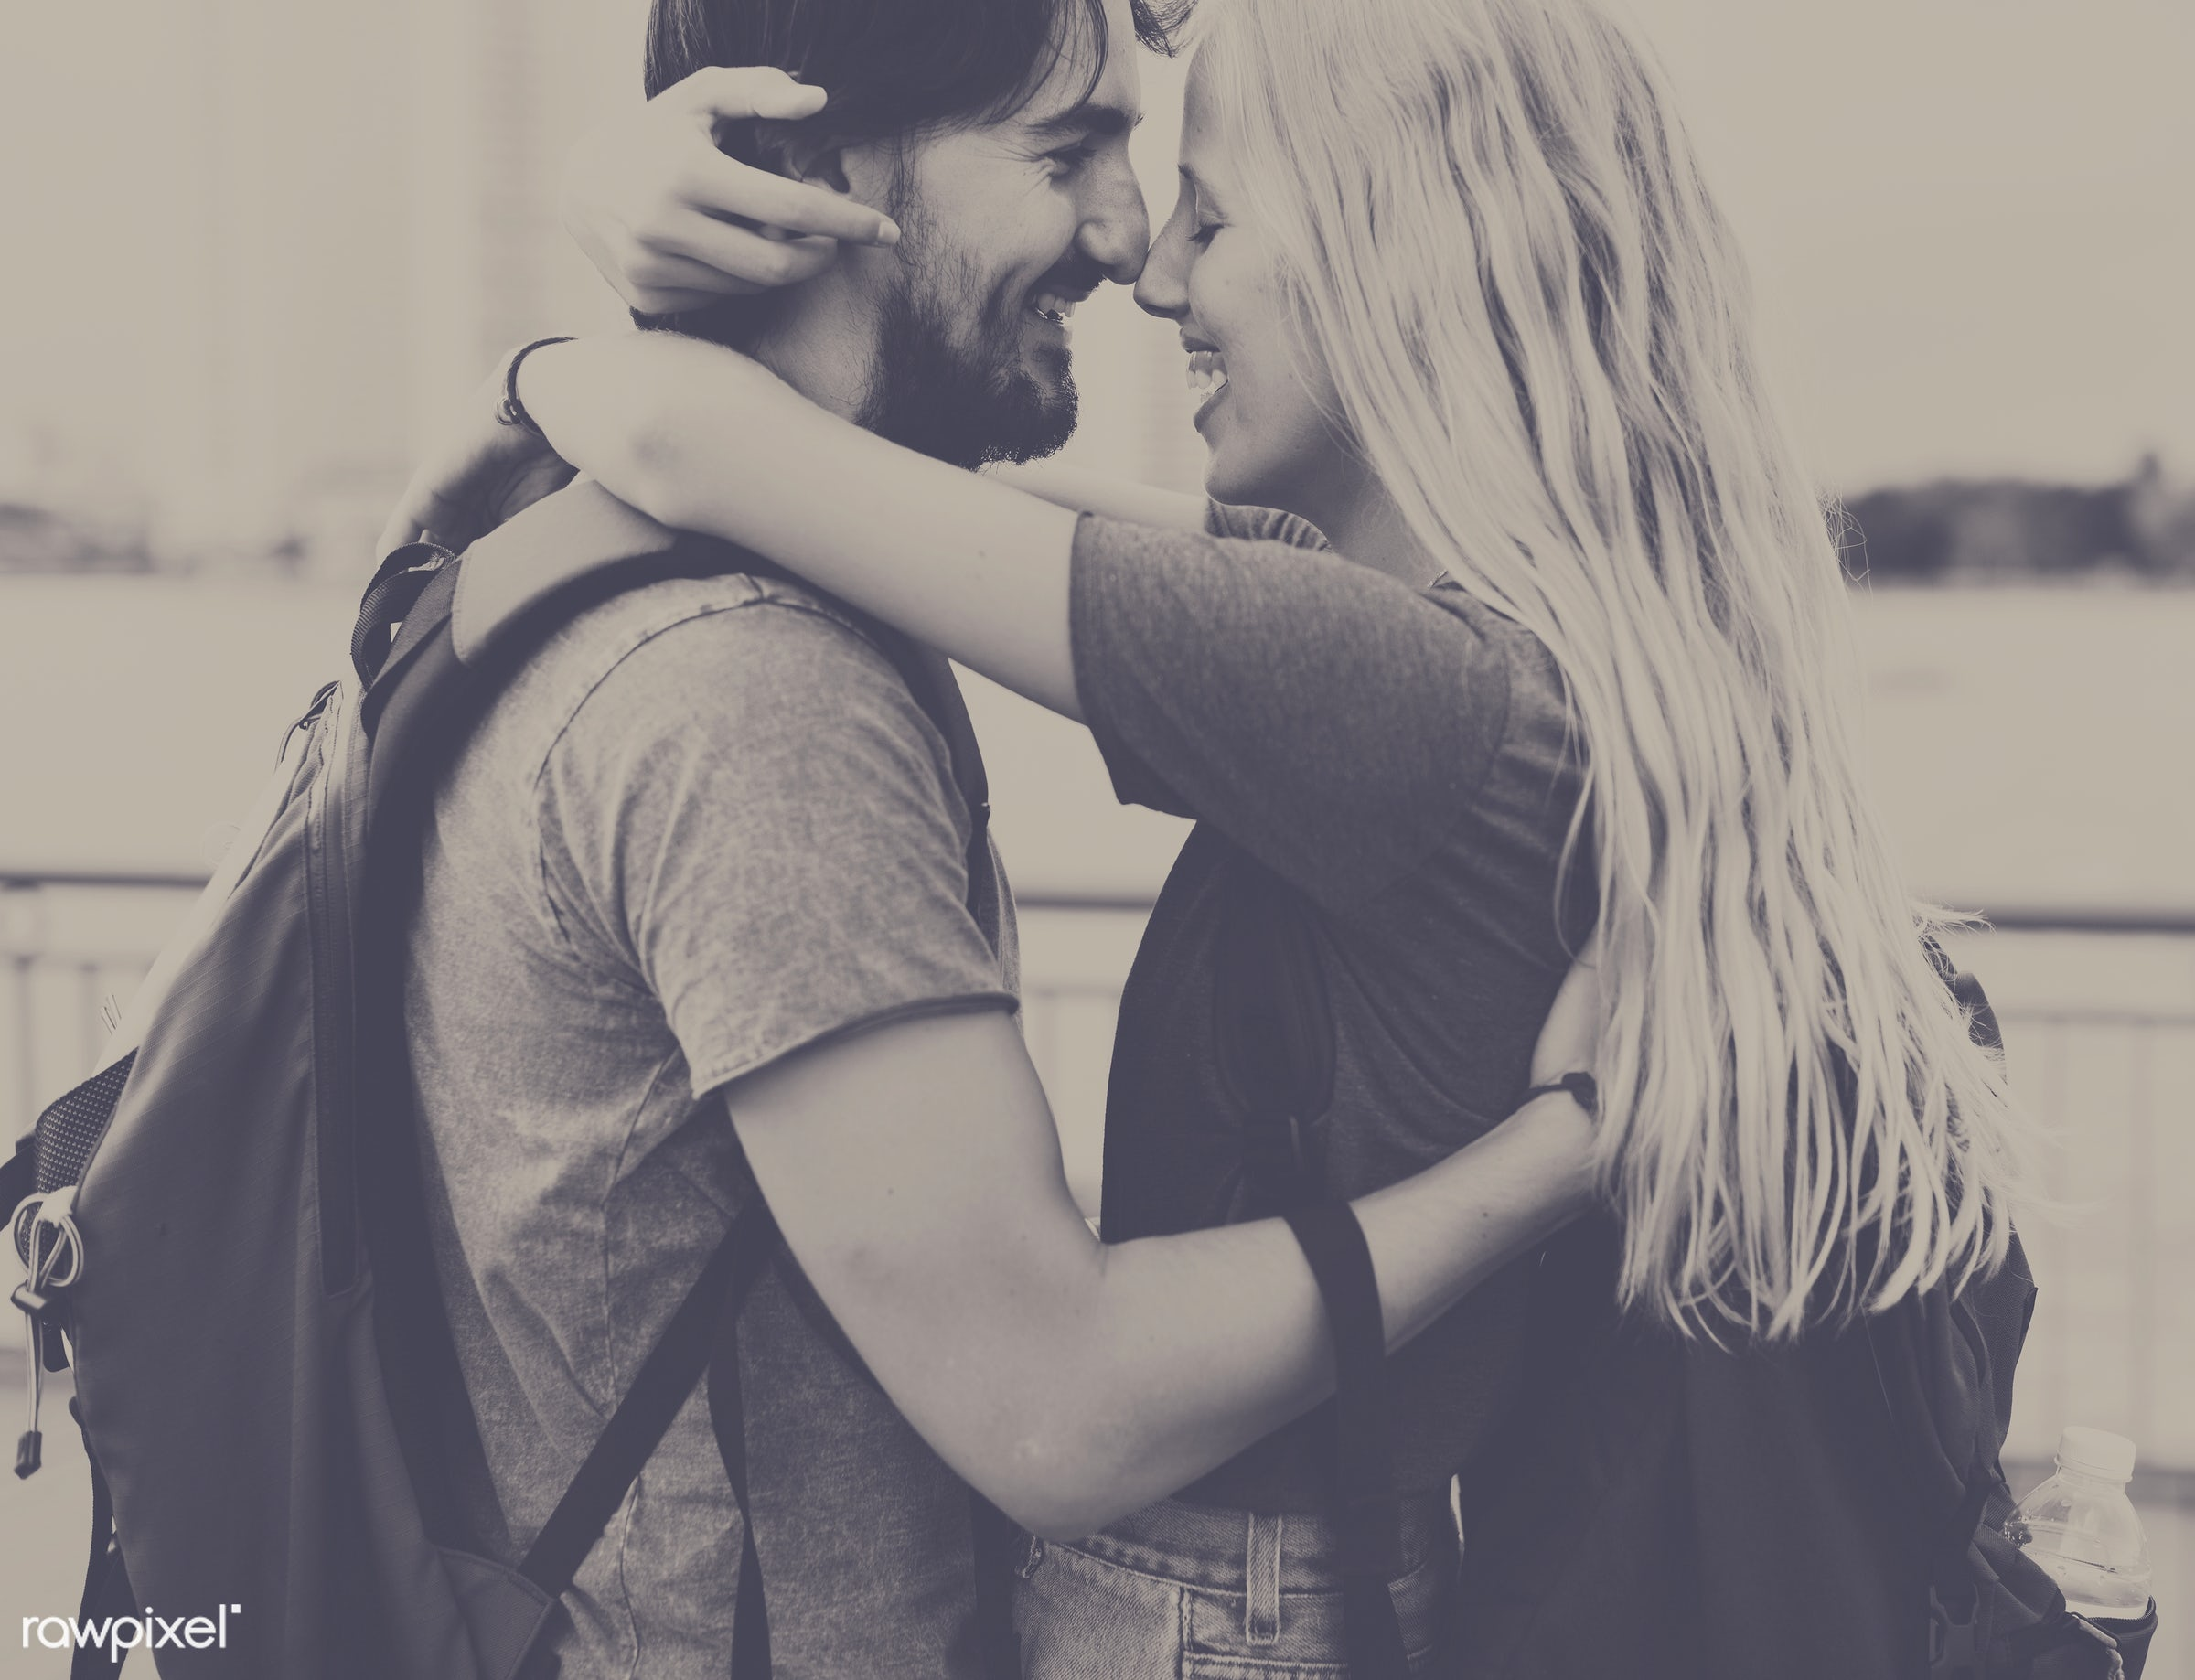 adult, affection, arms, around, beard, blonde, bonding, boyfriend, casual, caucasian, cheerful, city, couple, embrace, eyes...